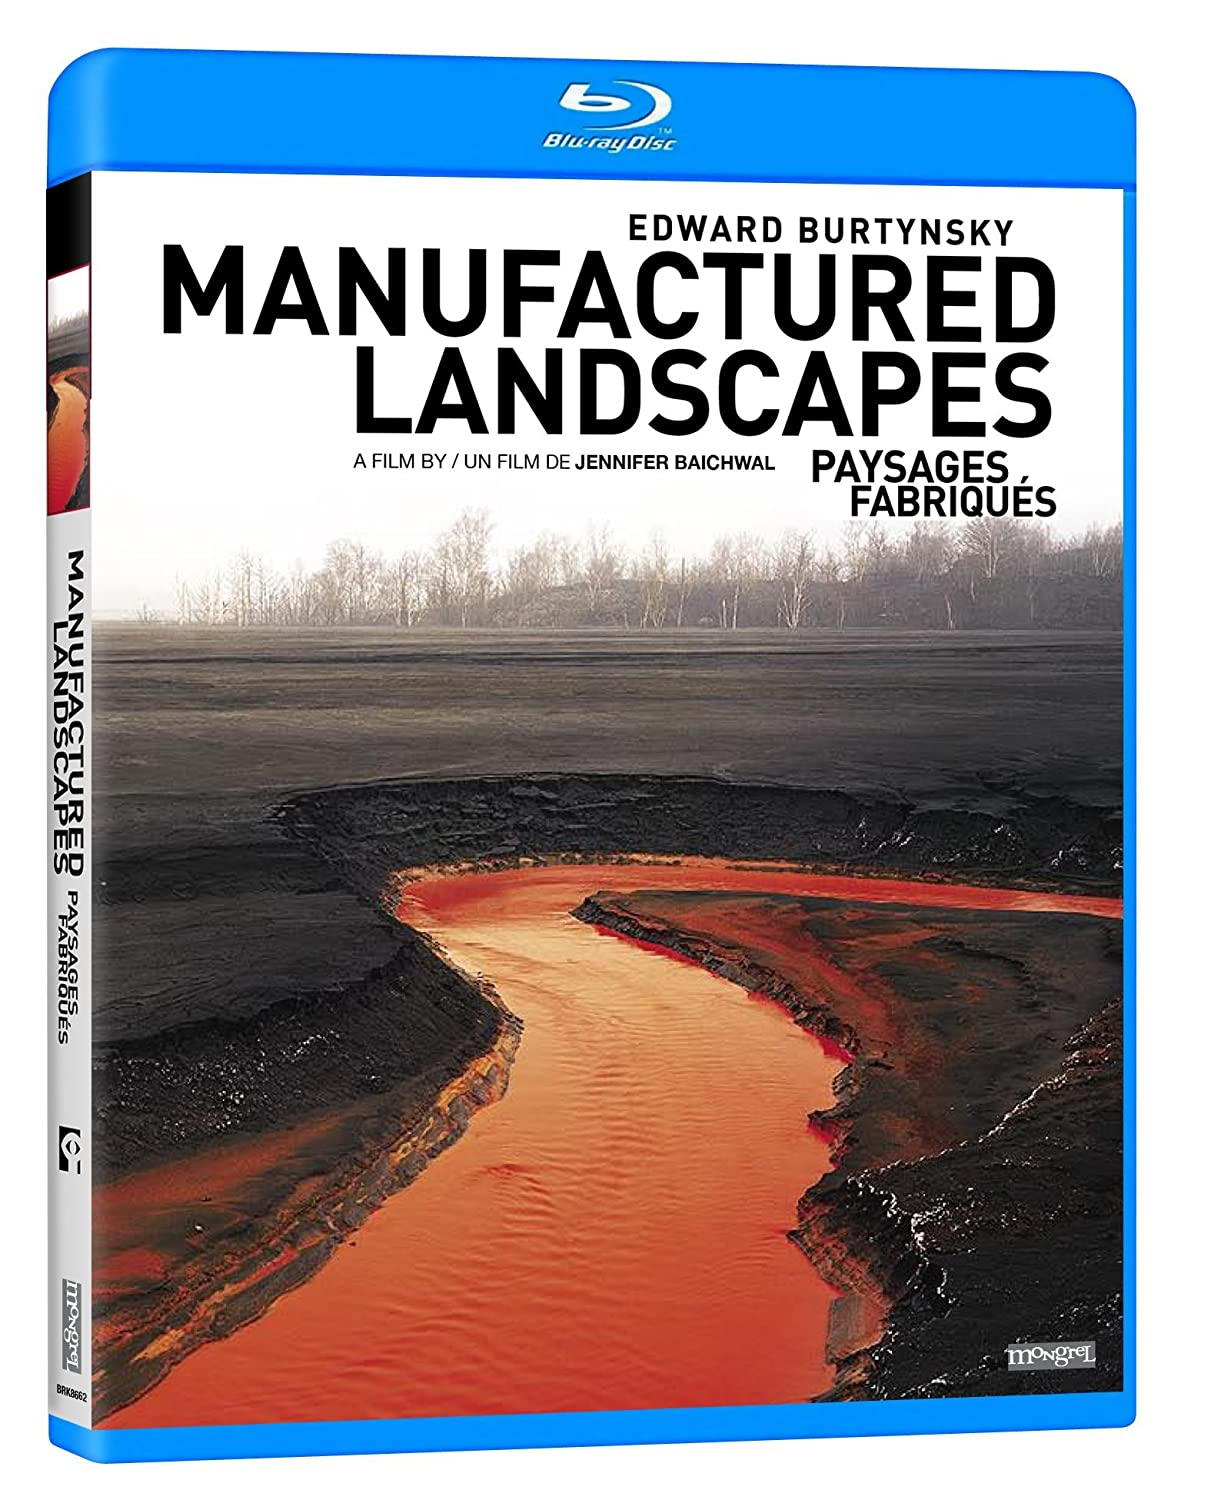 Manufactured Landscapes [Blu-ray] (Sous-titres français) Edward Burtynsky Jennifer Baichwal Mongrel Media Documentary